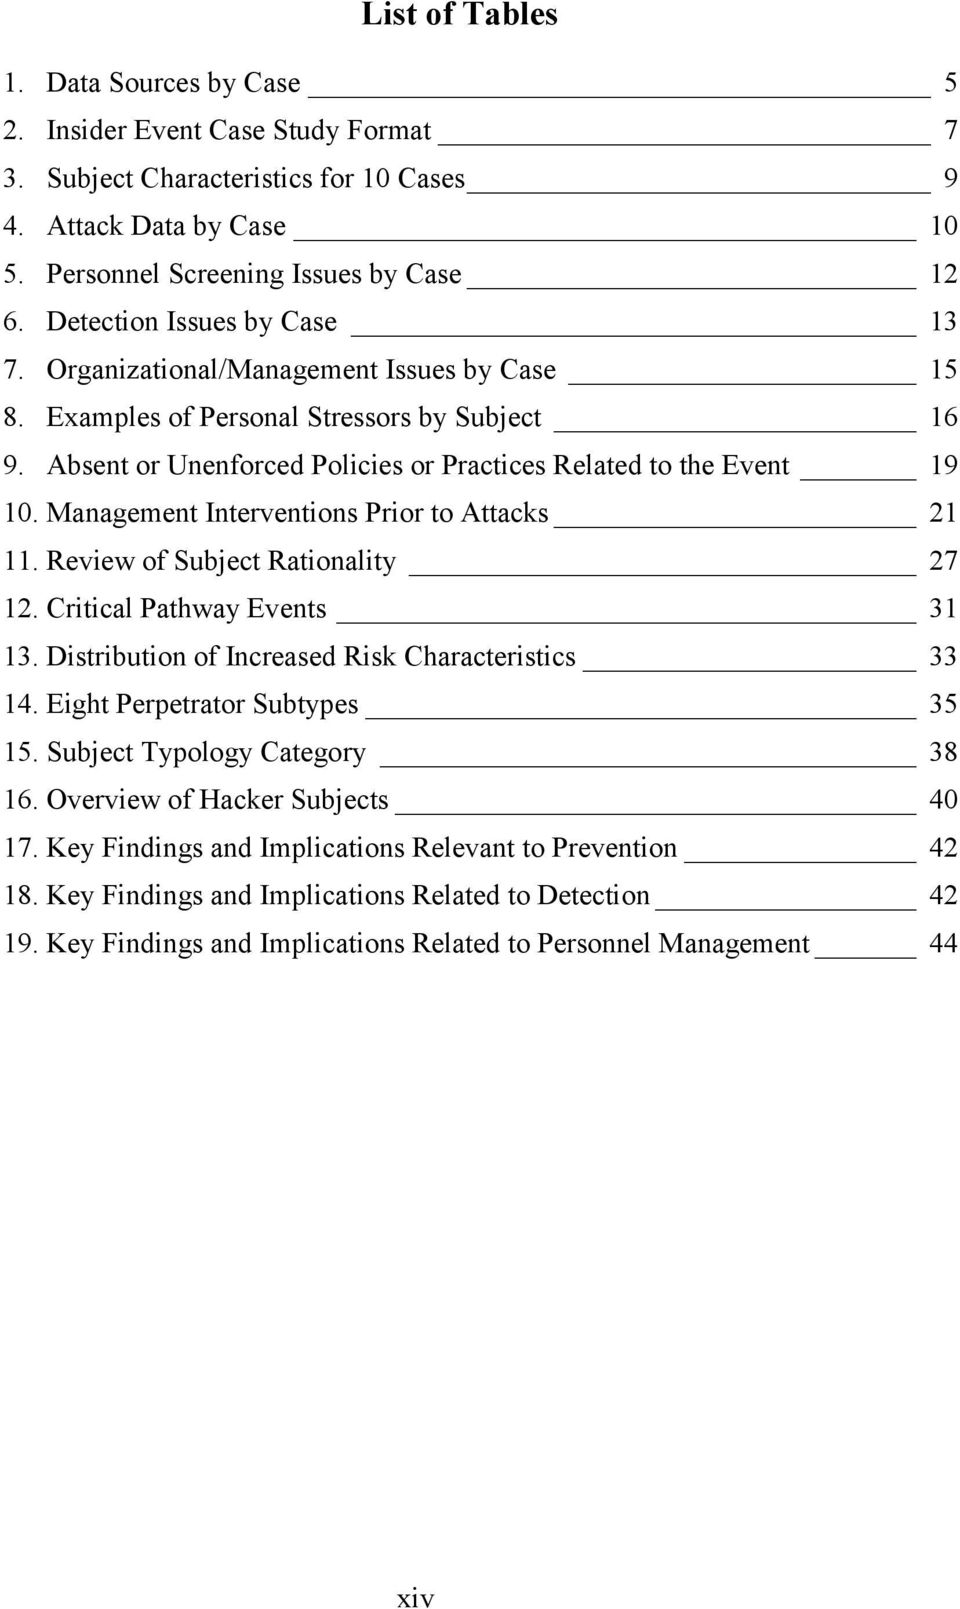 Management Interventions Prior to Attacks 21 11. Review of Subject Rationality 27 12. Critical Pathway Events 31 13. Distribution of Increased Risk Characteristics 33 14.